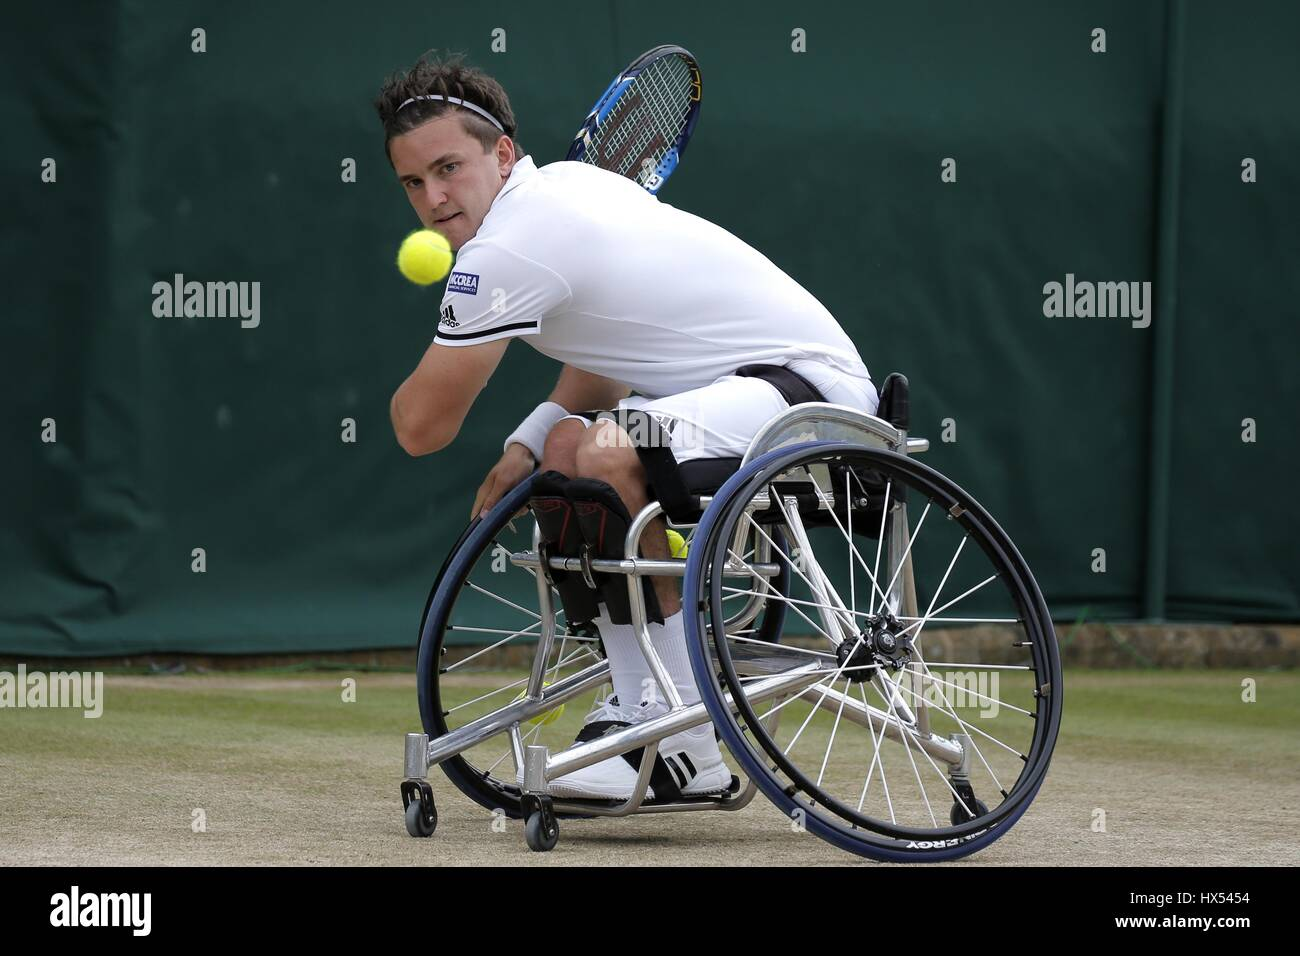 GORDON REID GENTLEMEN'S WHEELCHAIR SINGLES FINAL GENTLEMEN'S WHEELCHAIR SINGLES THE ALL ENGLAND TENNIS CLUB - Stock Image